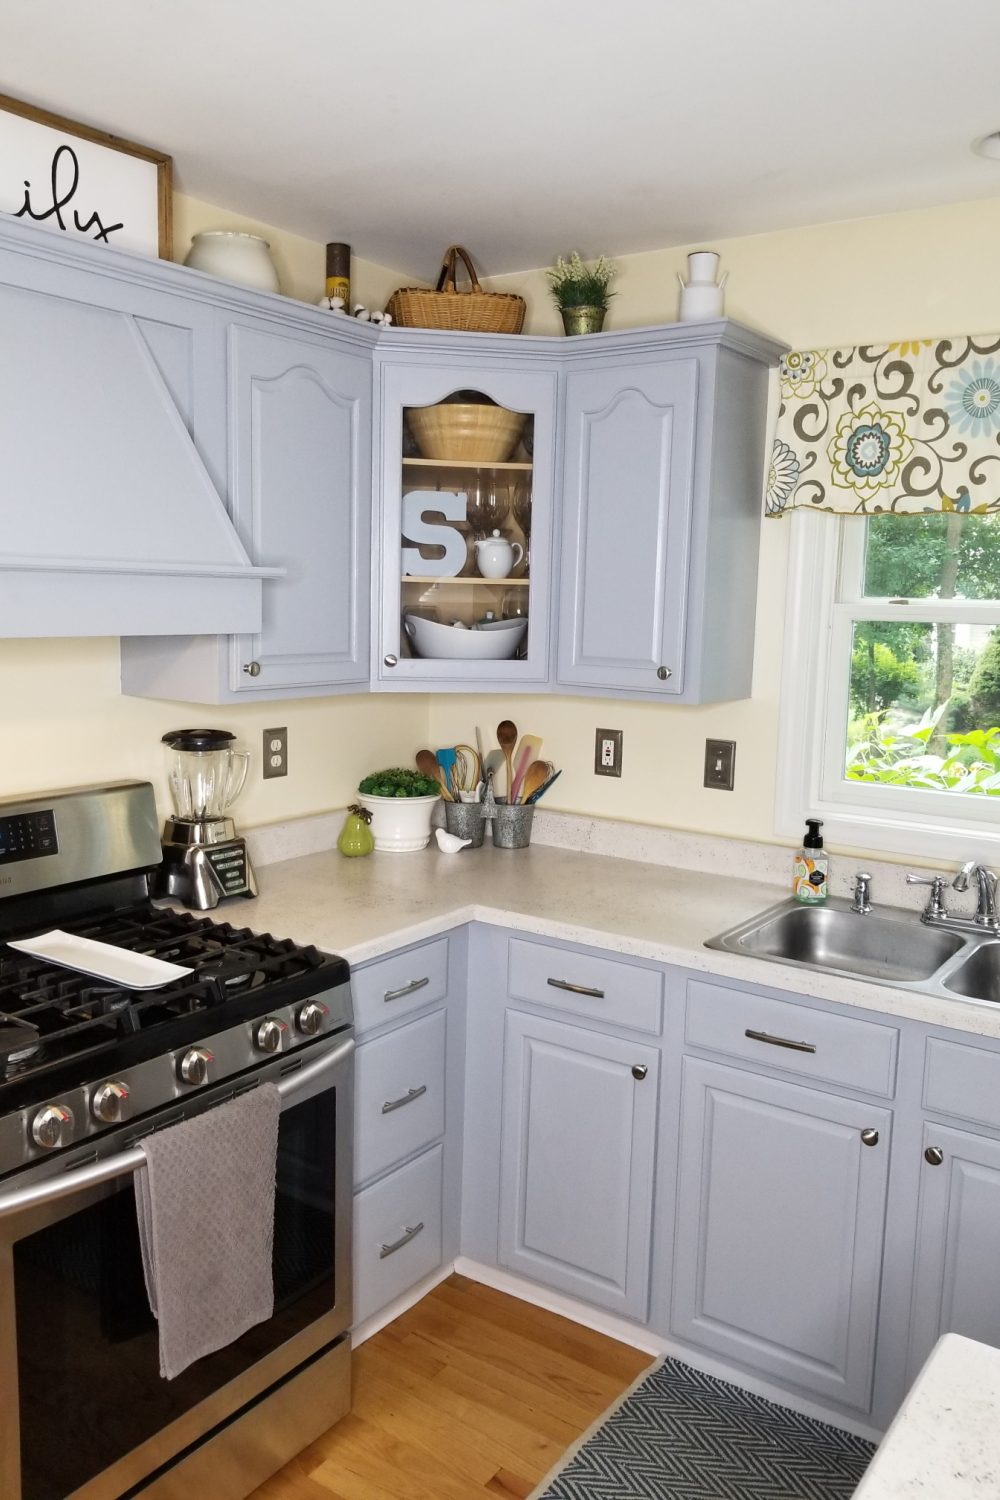 Kitchen Makeover after using Daich Spreadstone Finishing Kit